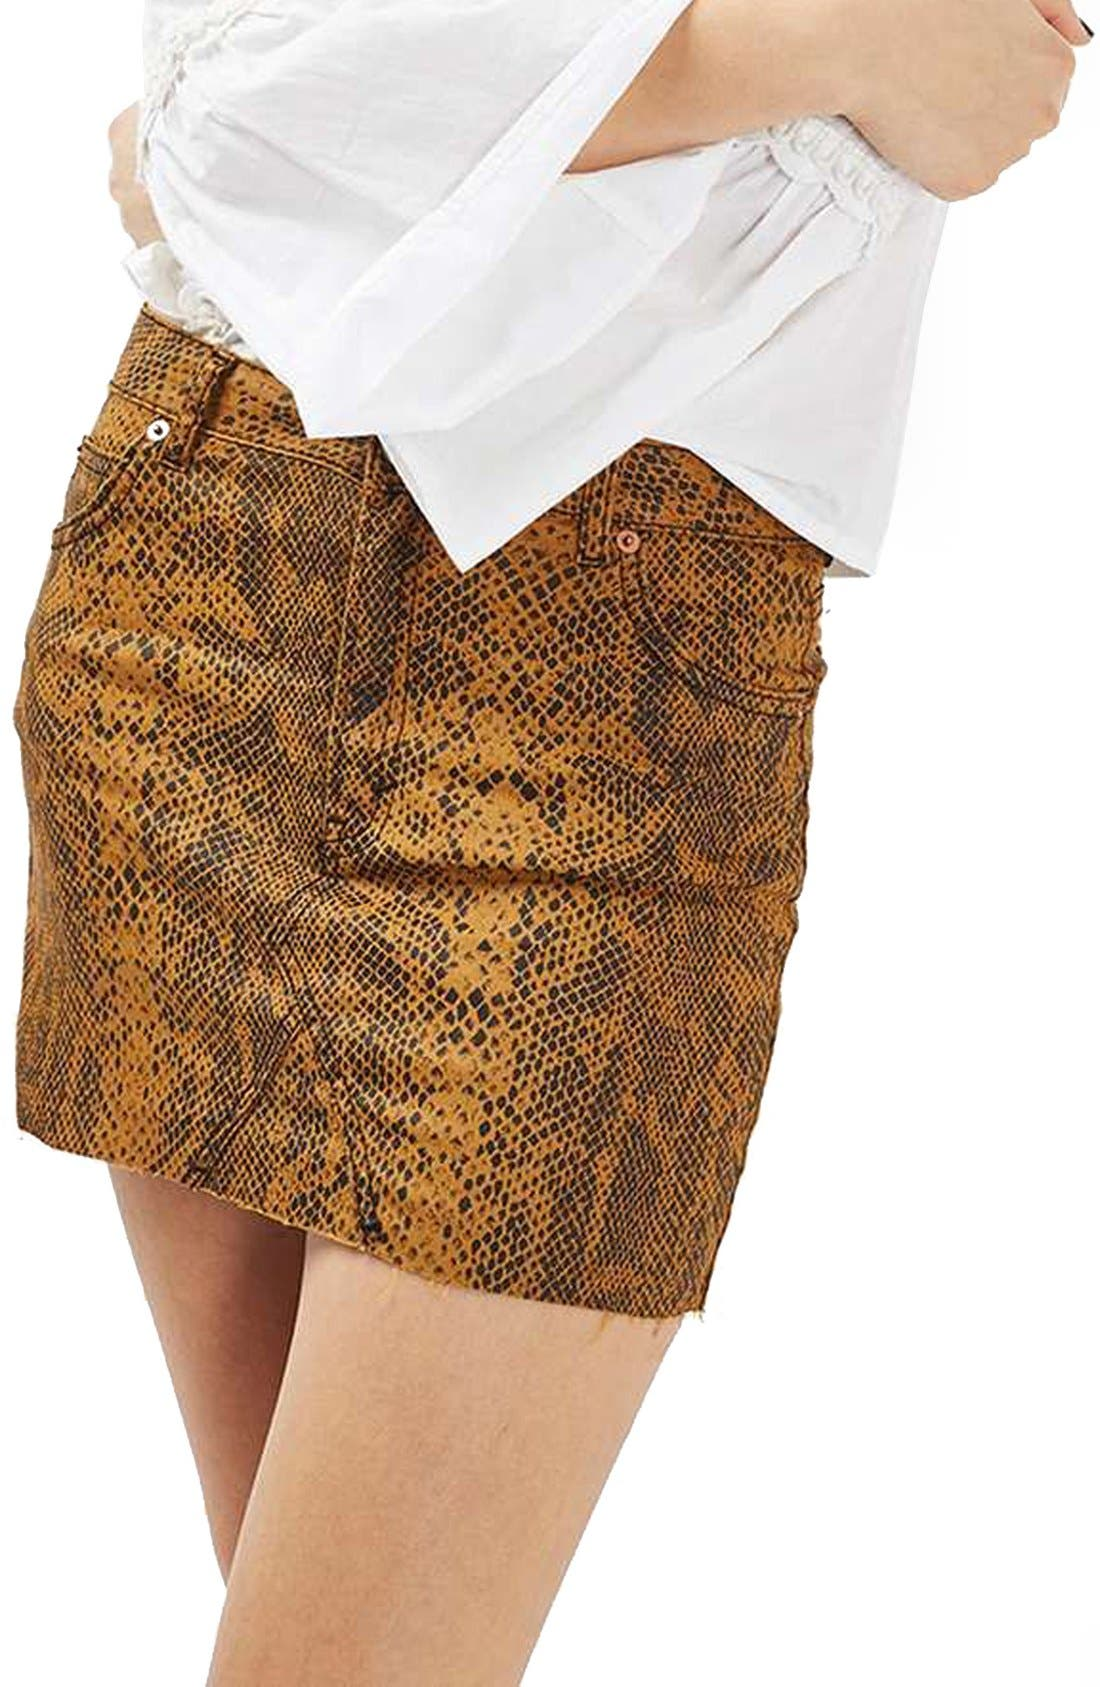 Alternate Image 1 Selected - Topshop Snake Print Miniskirt